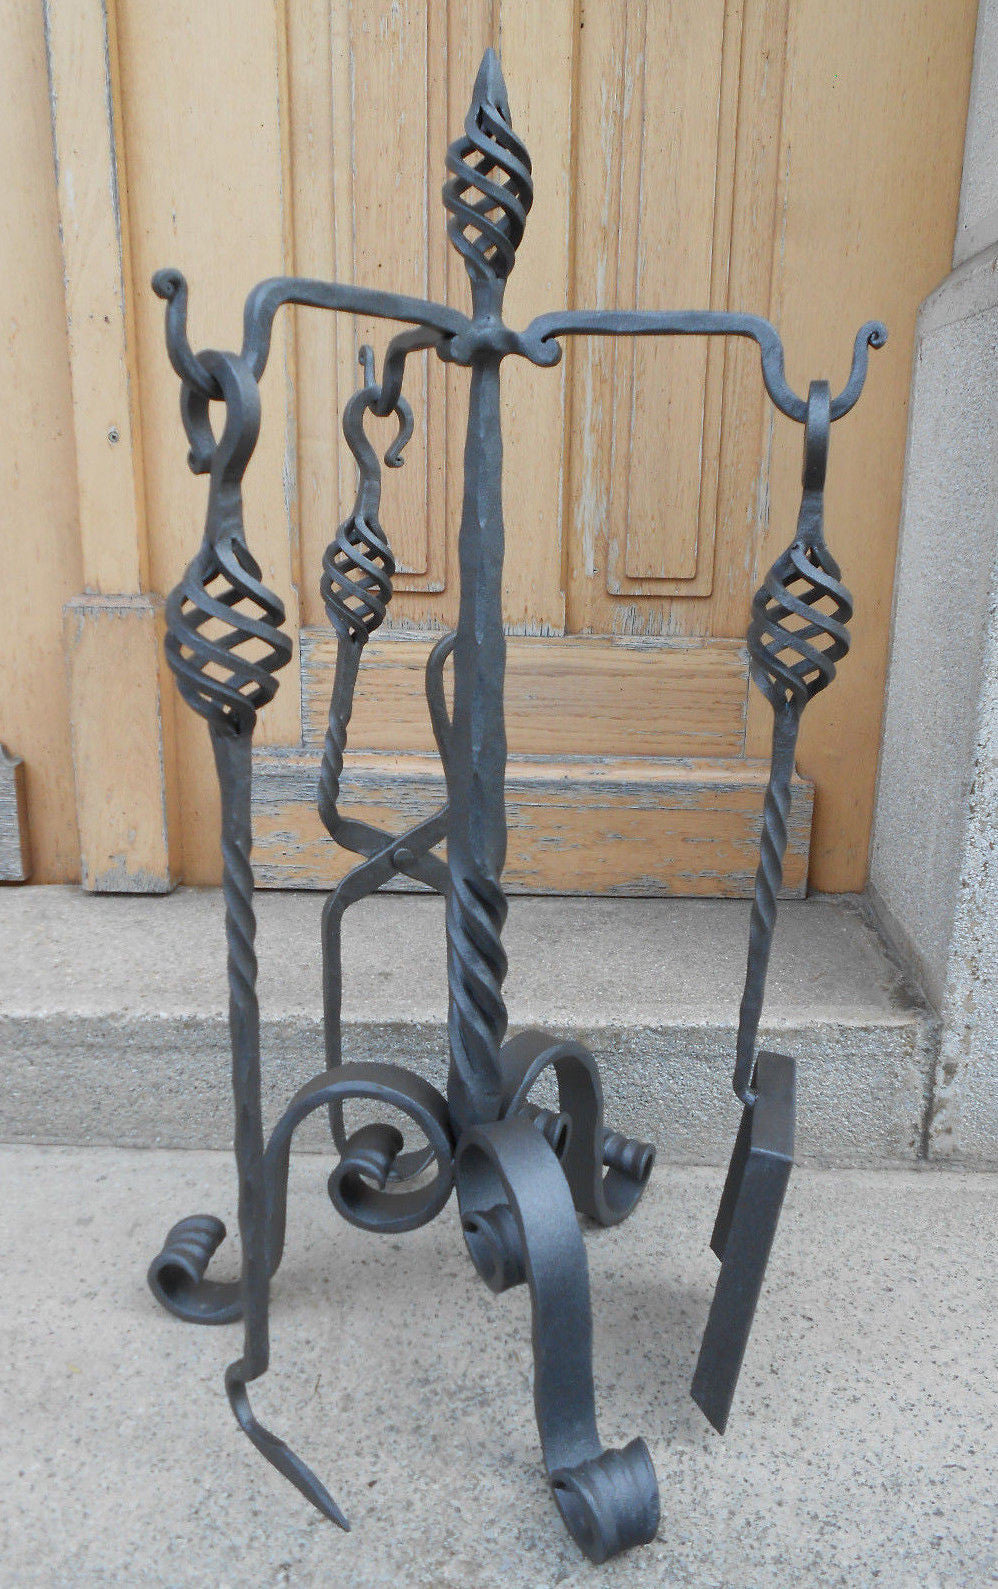 ... Hand Forged Fireplace Tools Set Wrought Iron Handmade 4 Pieces Stove  Set   Handcrafted Wood, ...